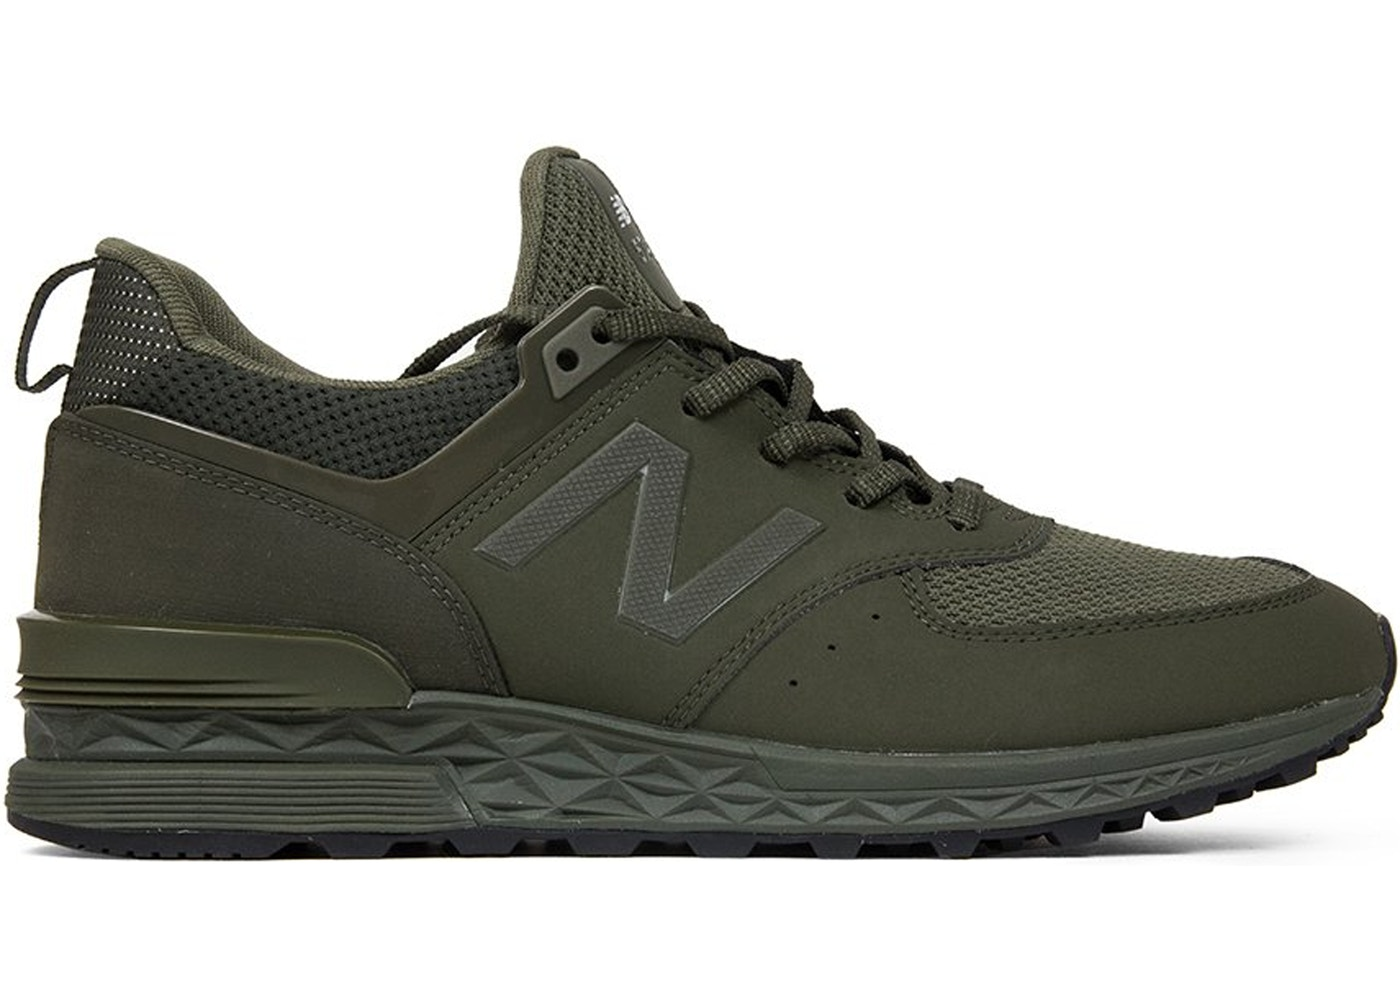 new style 31eeb 3f3f5 New Balance Size 15 Shoes - Price Premium